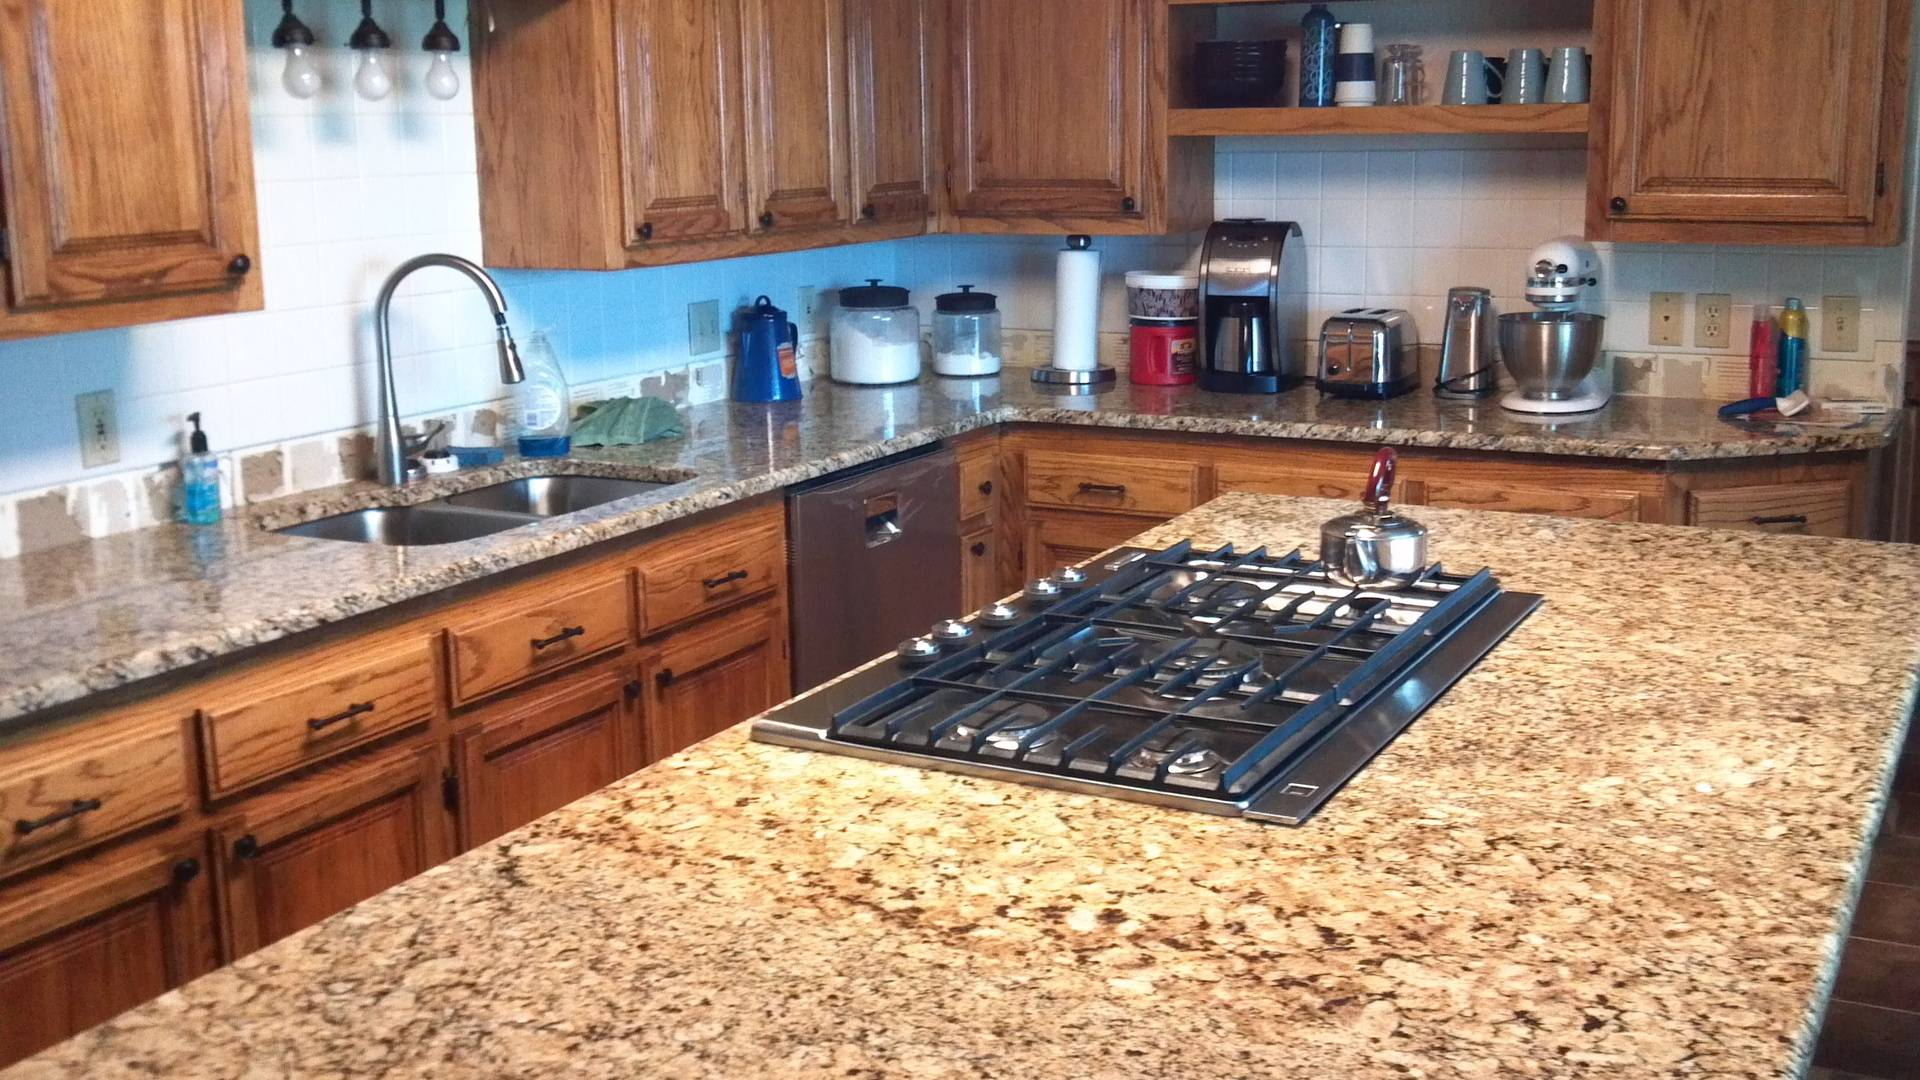 New Granite Counters and Modern Cooktop